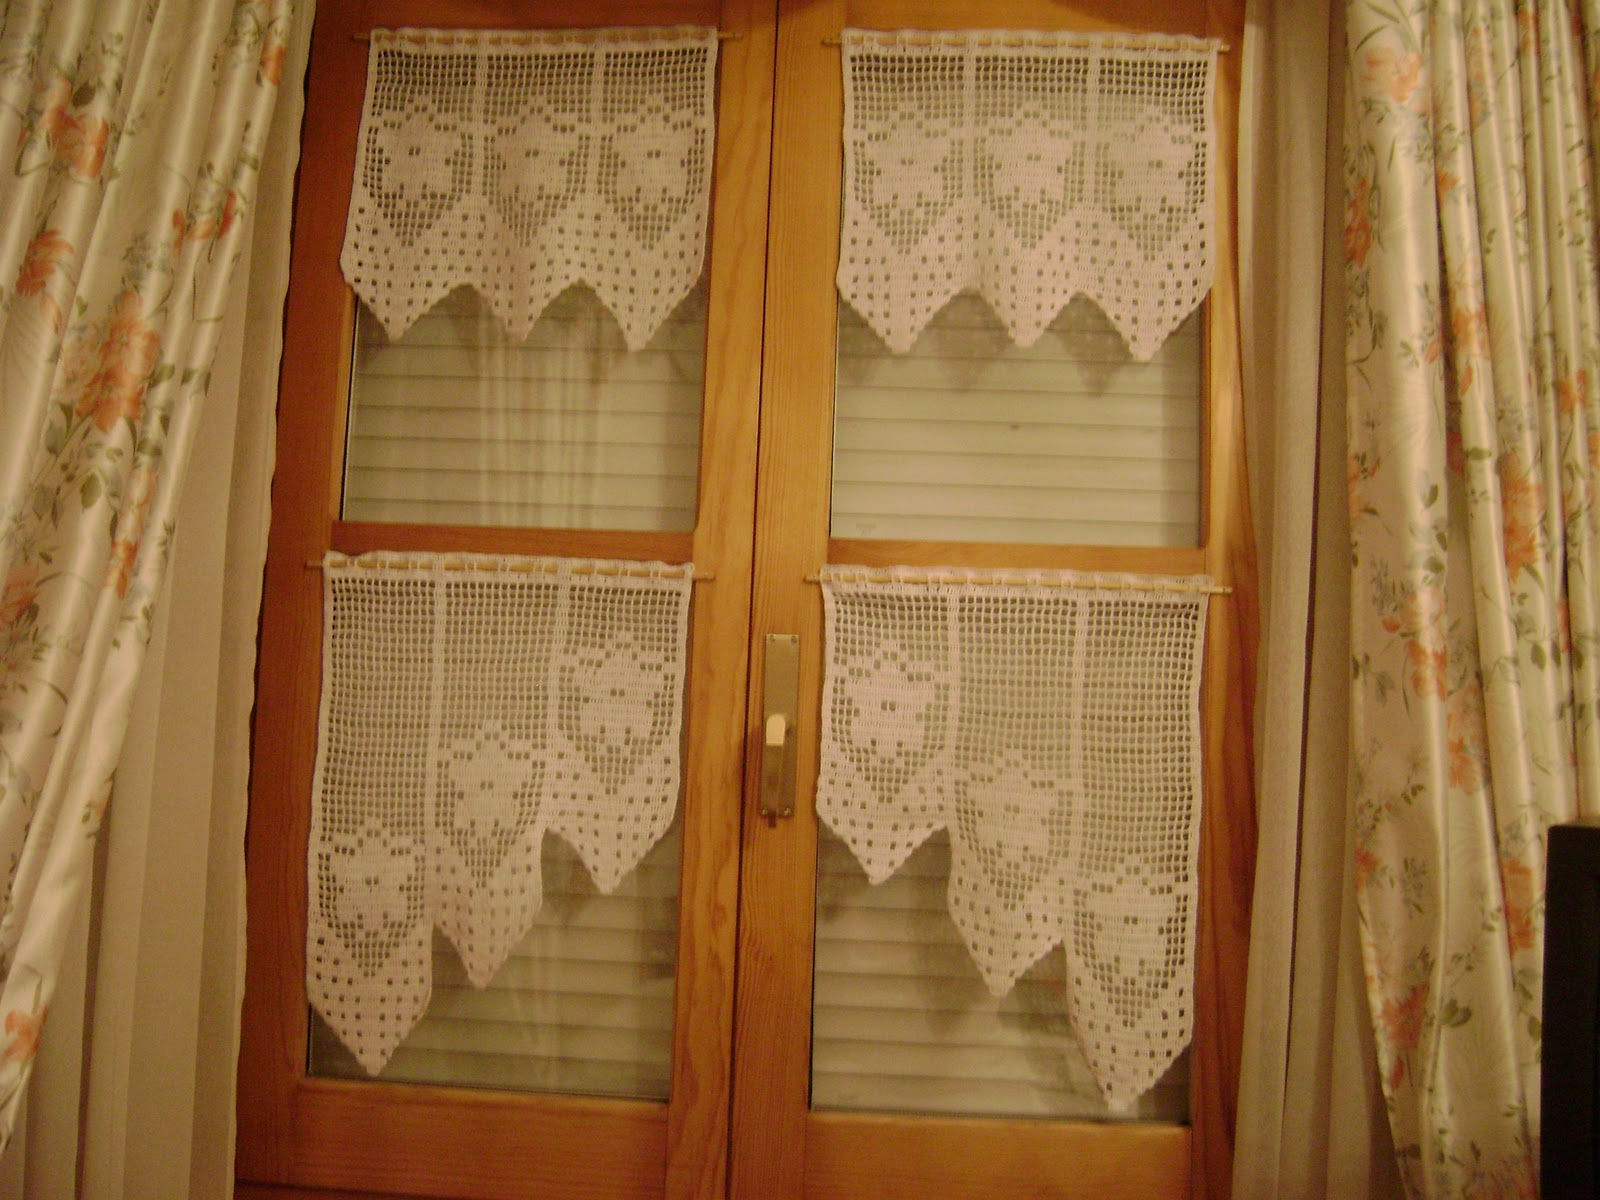 Cortina a crochet de cocina tattoo design bild for Cortinas para cocina